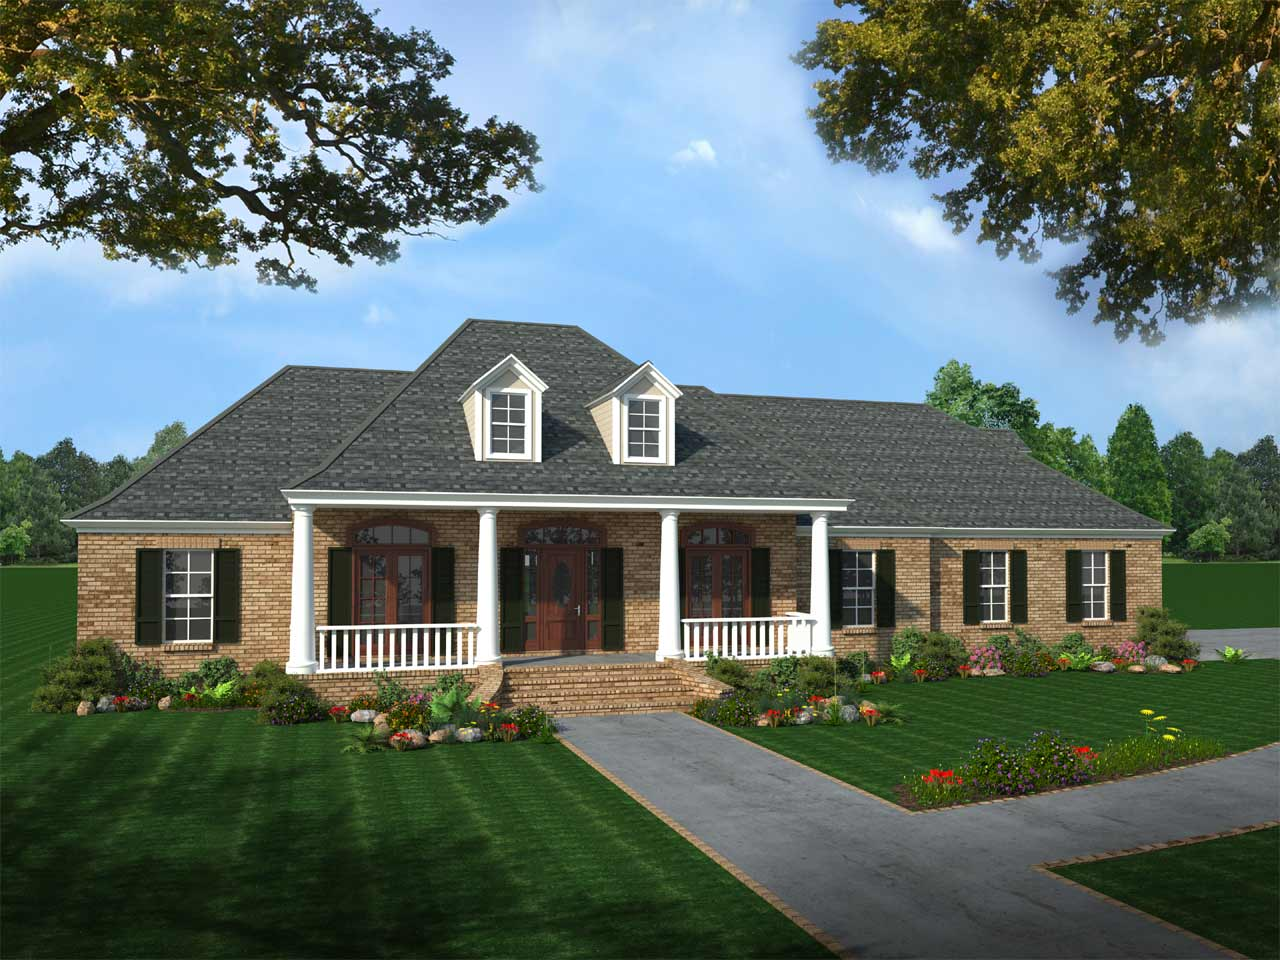 Southern Style Floor Plans Plan: 2-244